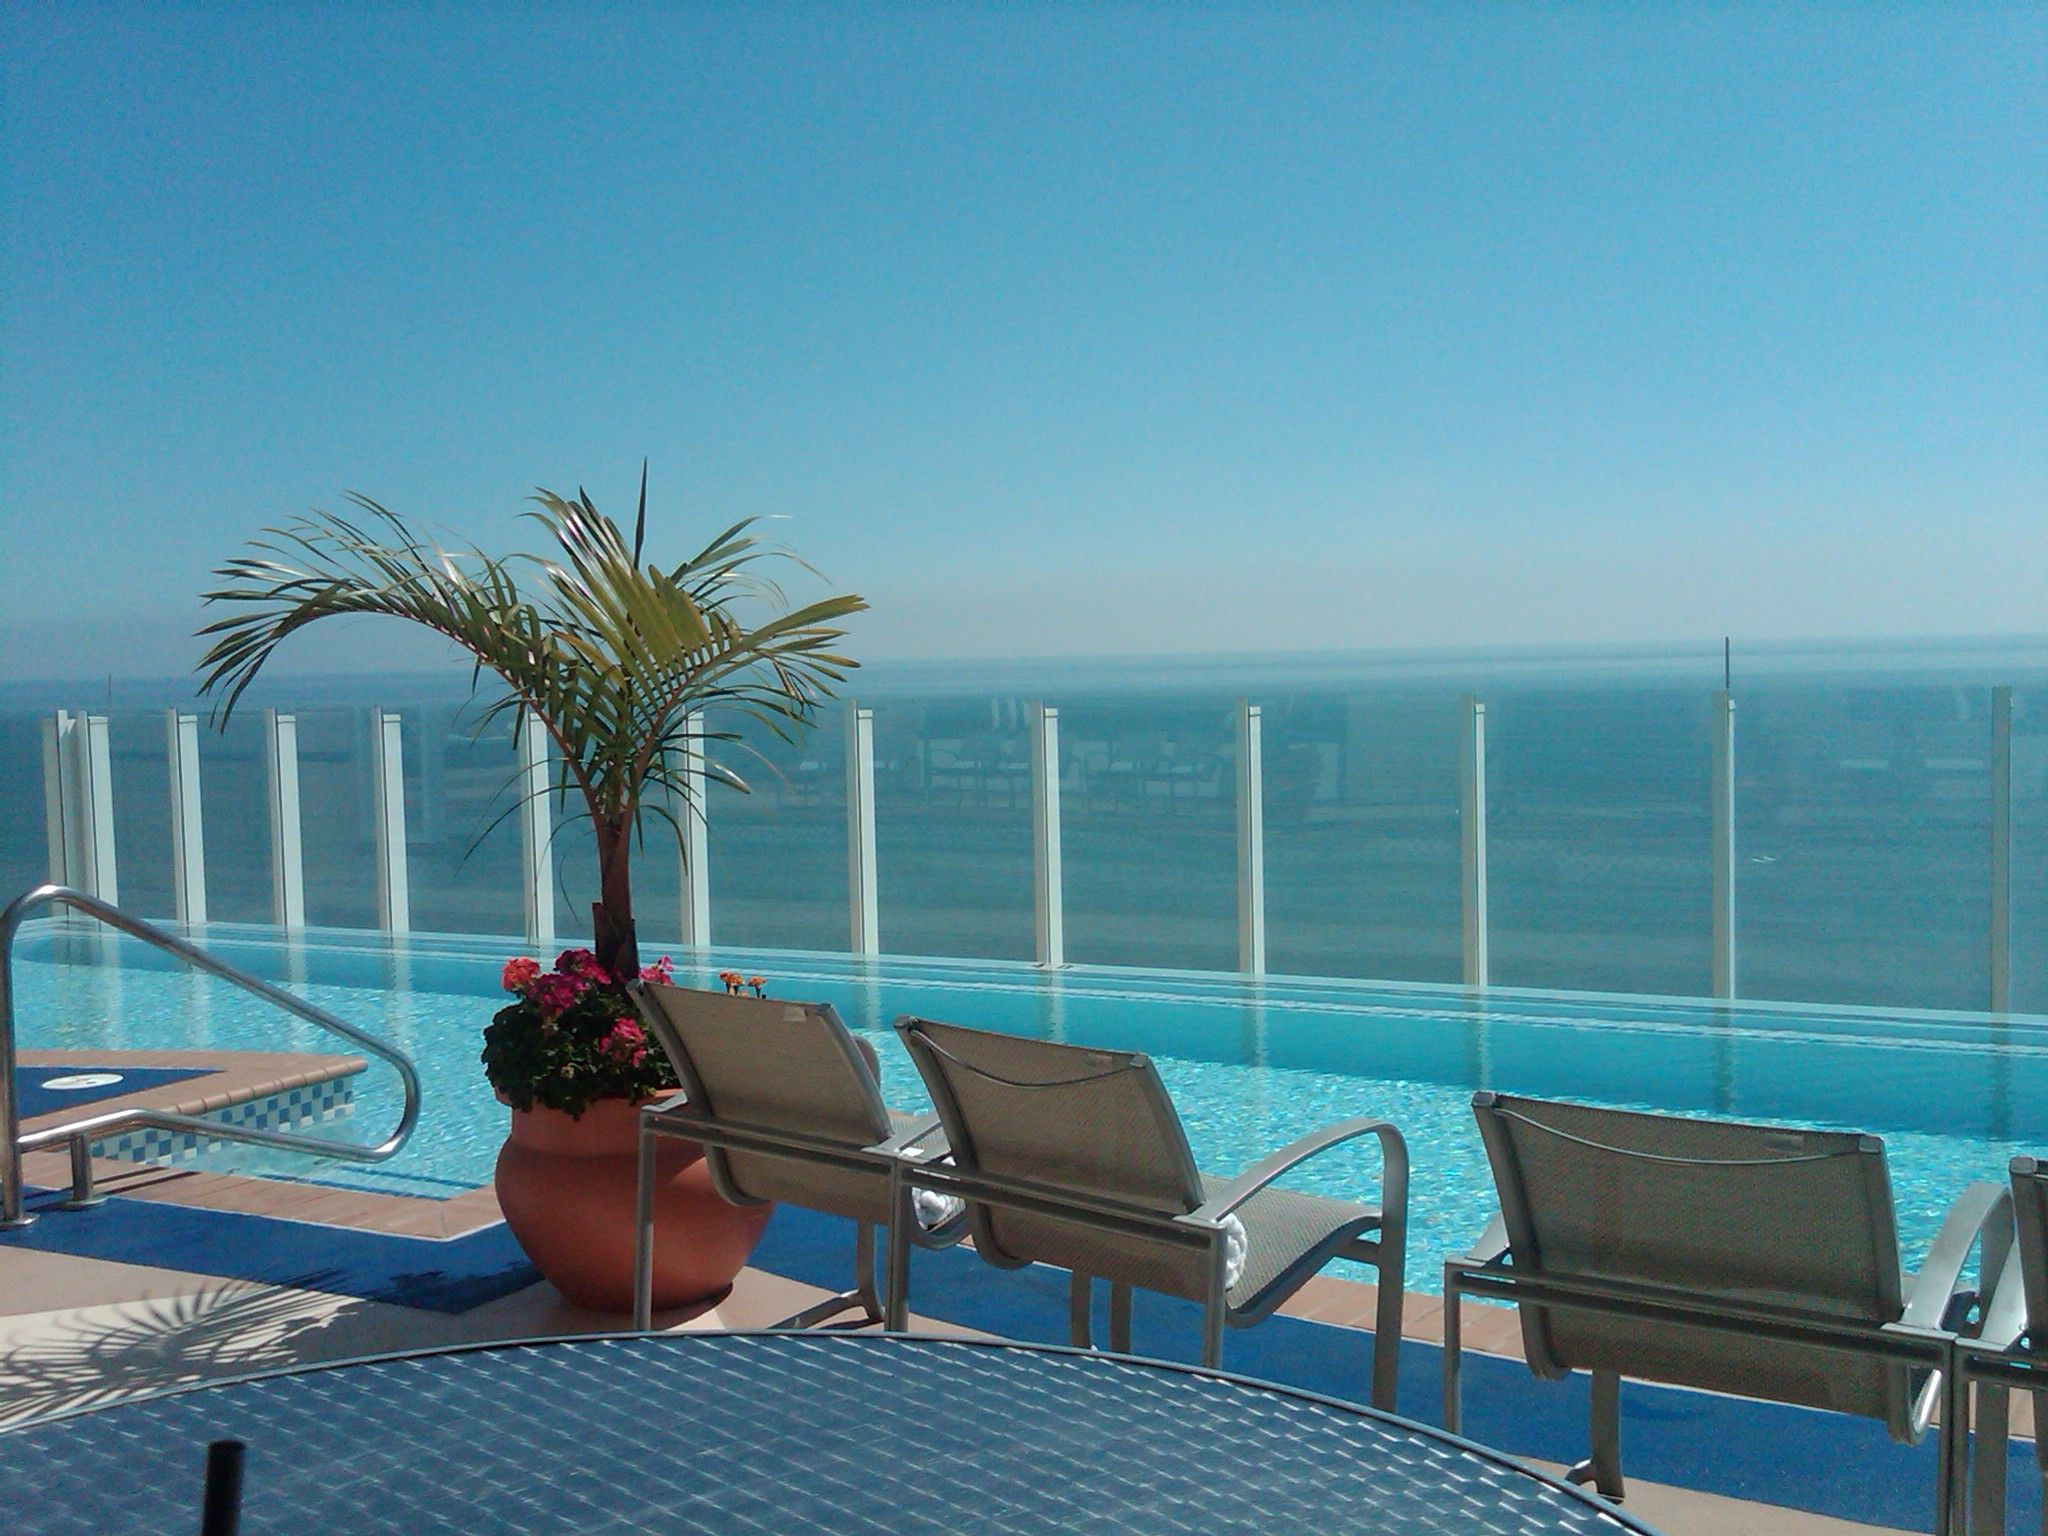 Rooftop Pool Hilton Oceanfront Virginia Beach That I Never Saw After Staying There For 4 Days